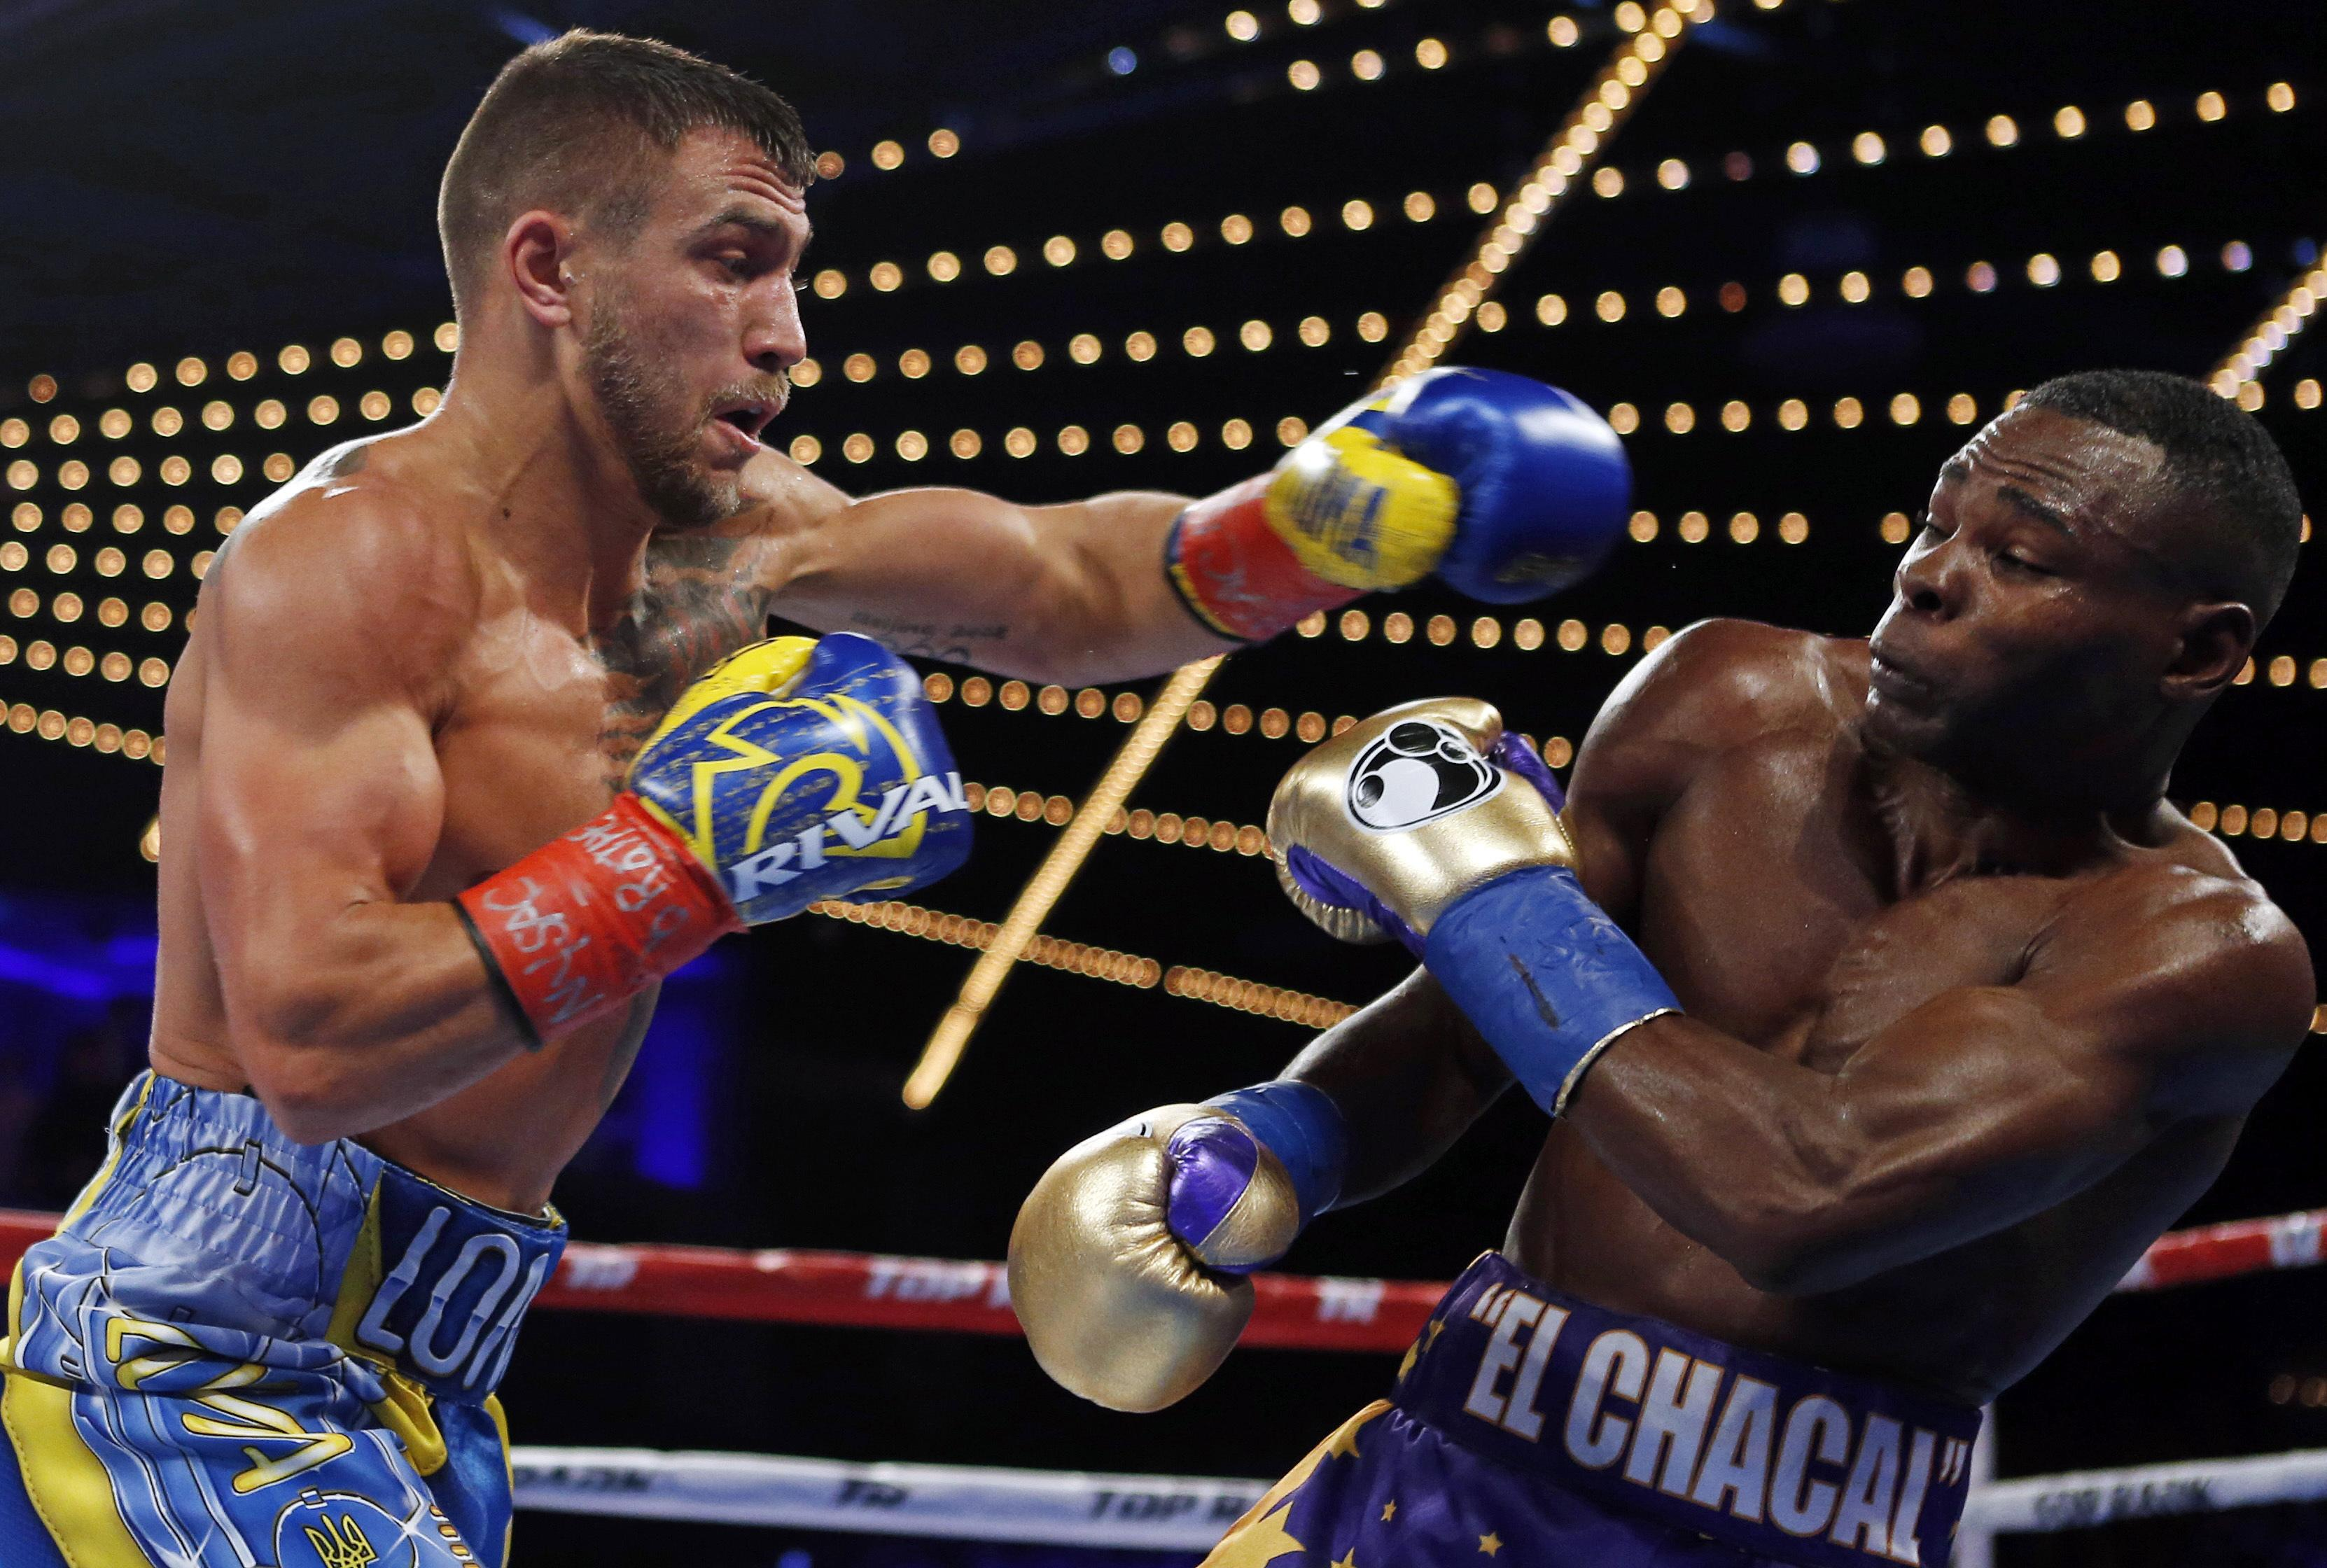 Vasyl Lomachenko sealed his place among the pound for pound greats with his win over Guillermo Rigondeaux in December